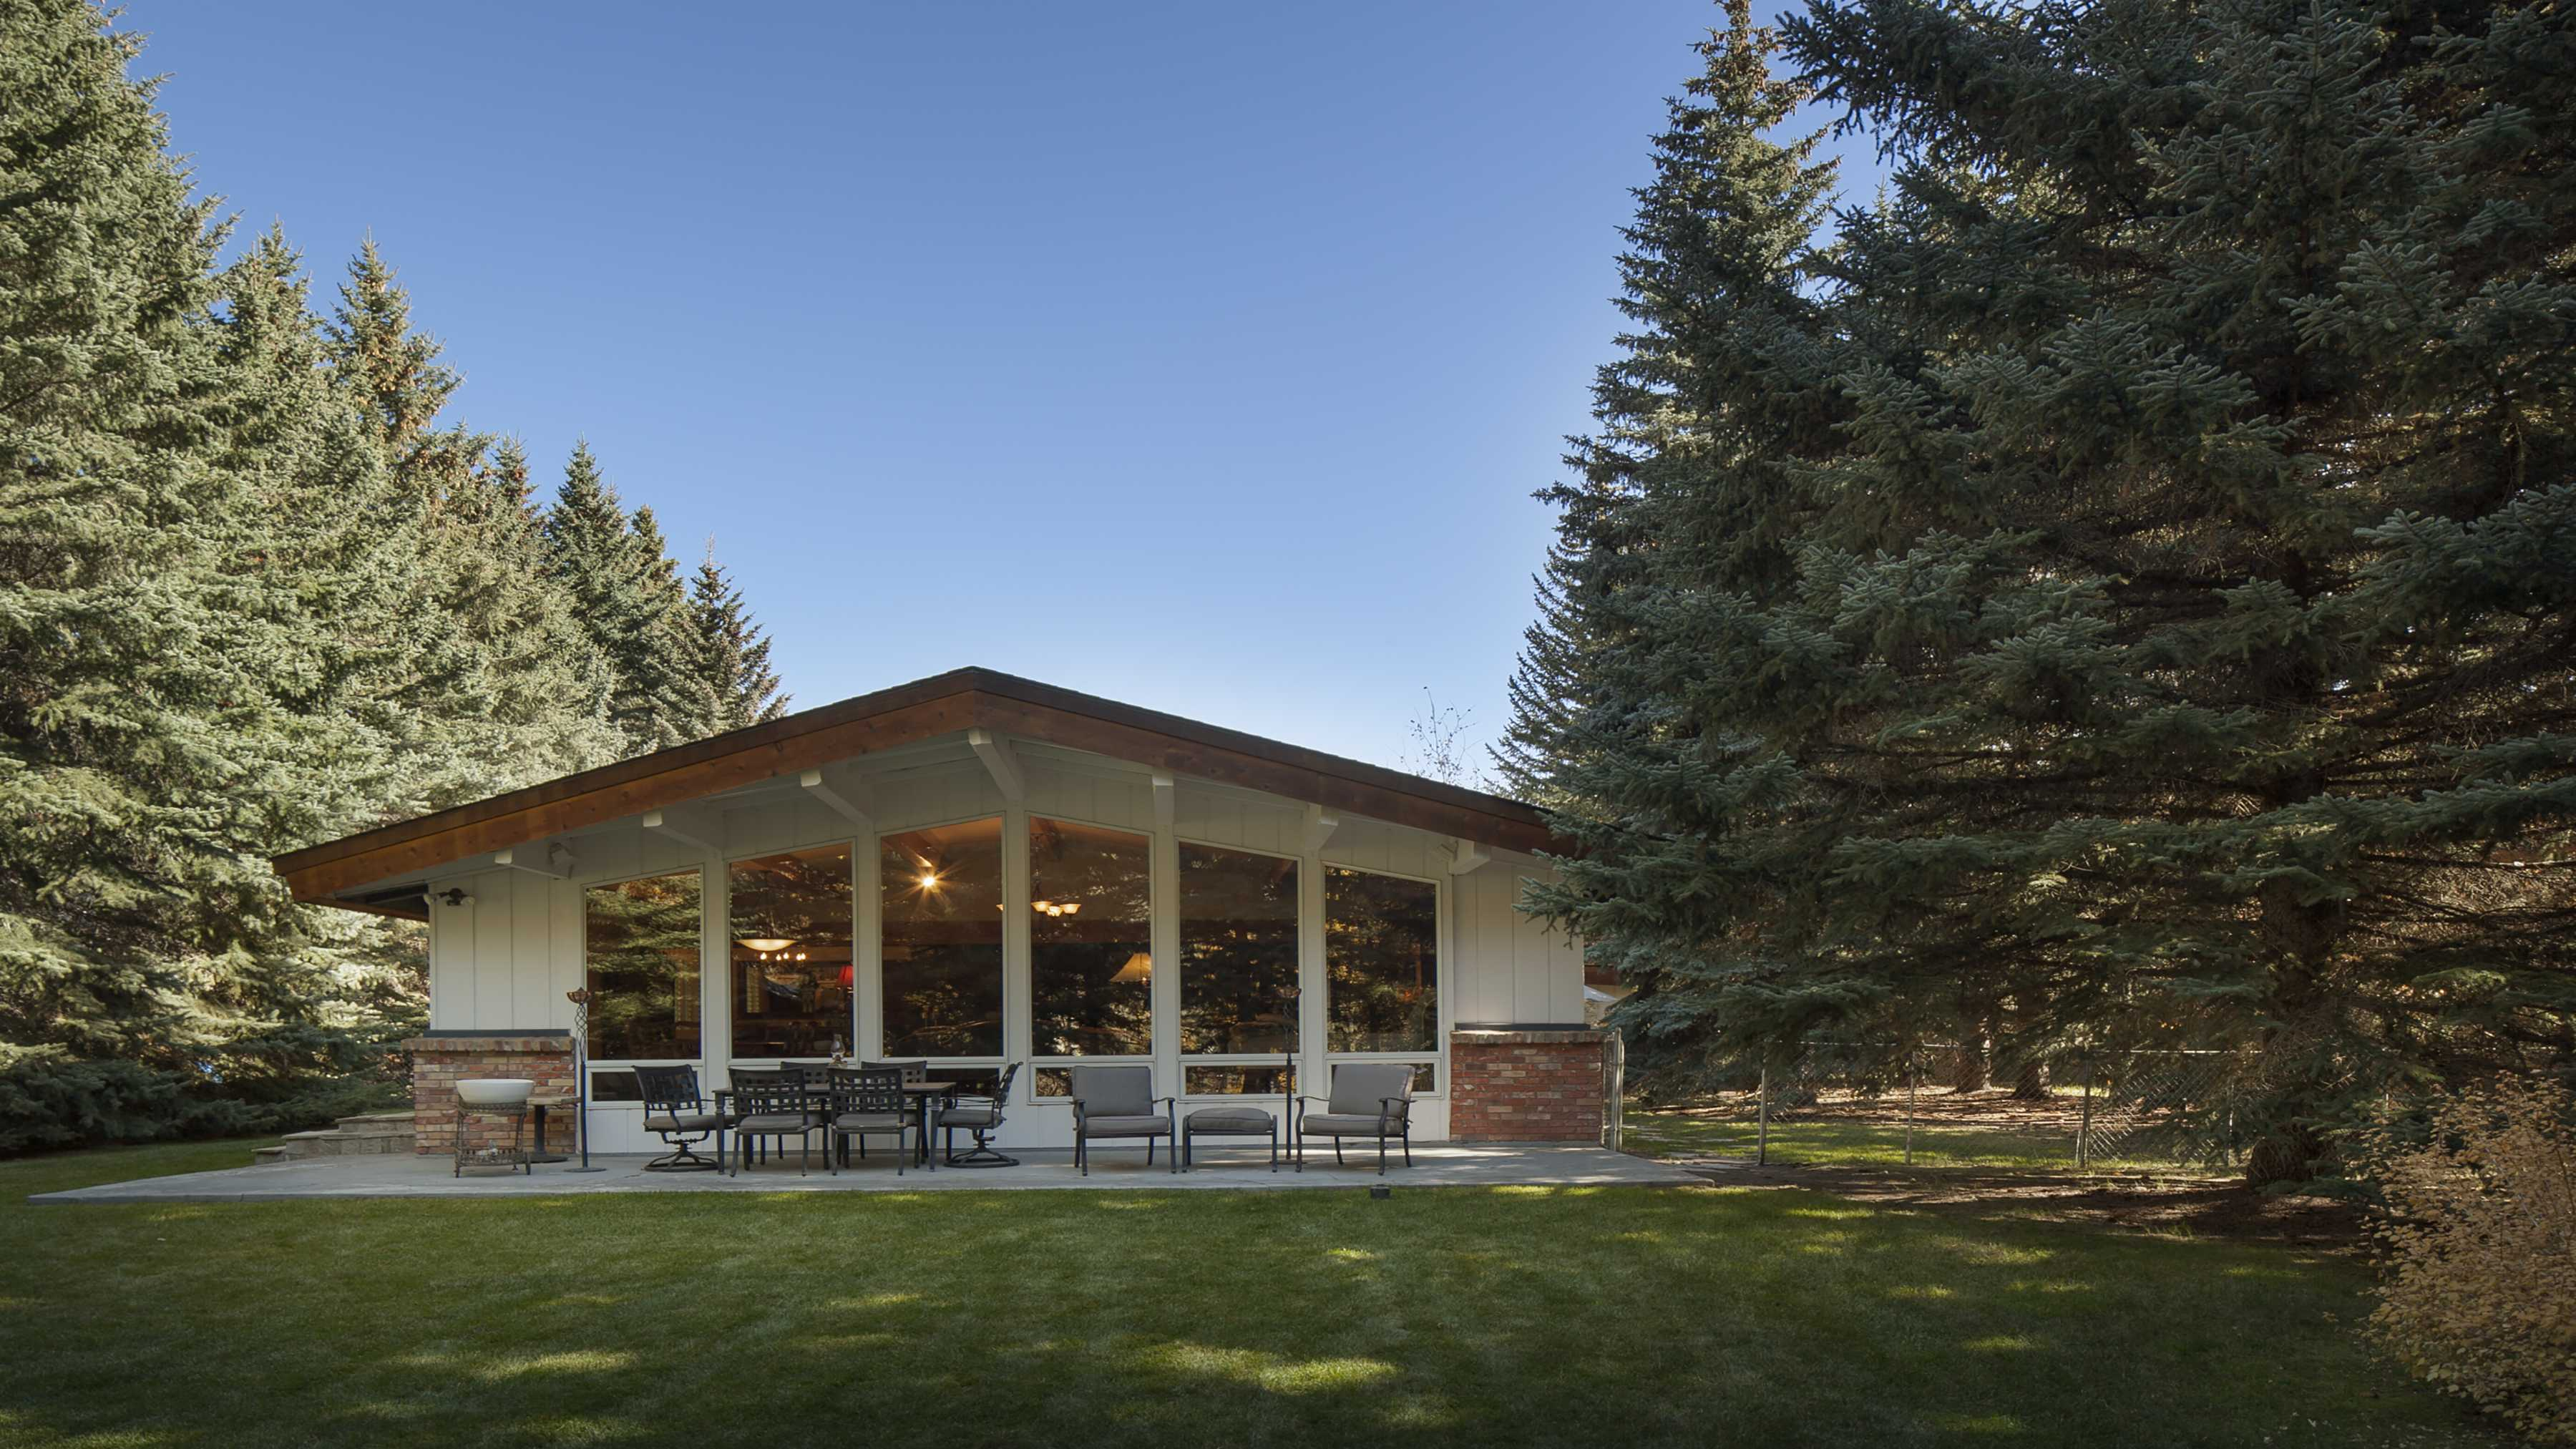 Single Family Home for Sale at Ketchum Living at Its Finest 12700 State Hwy 75 Ketchum, Idaho, 83340 United States